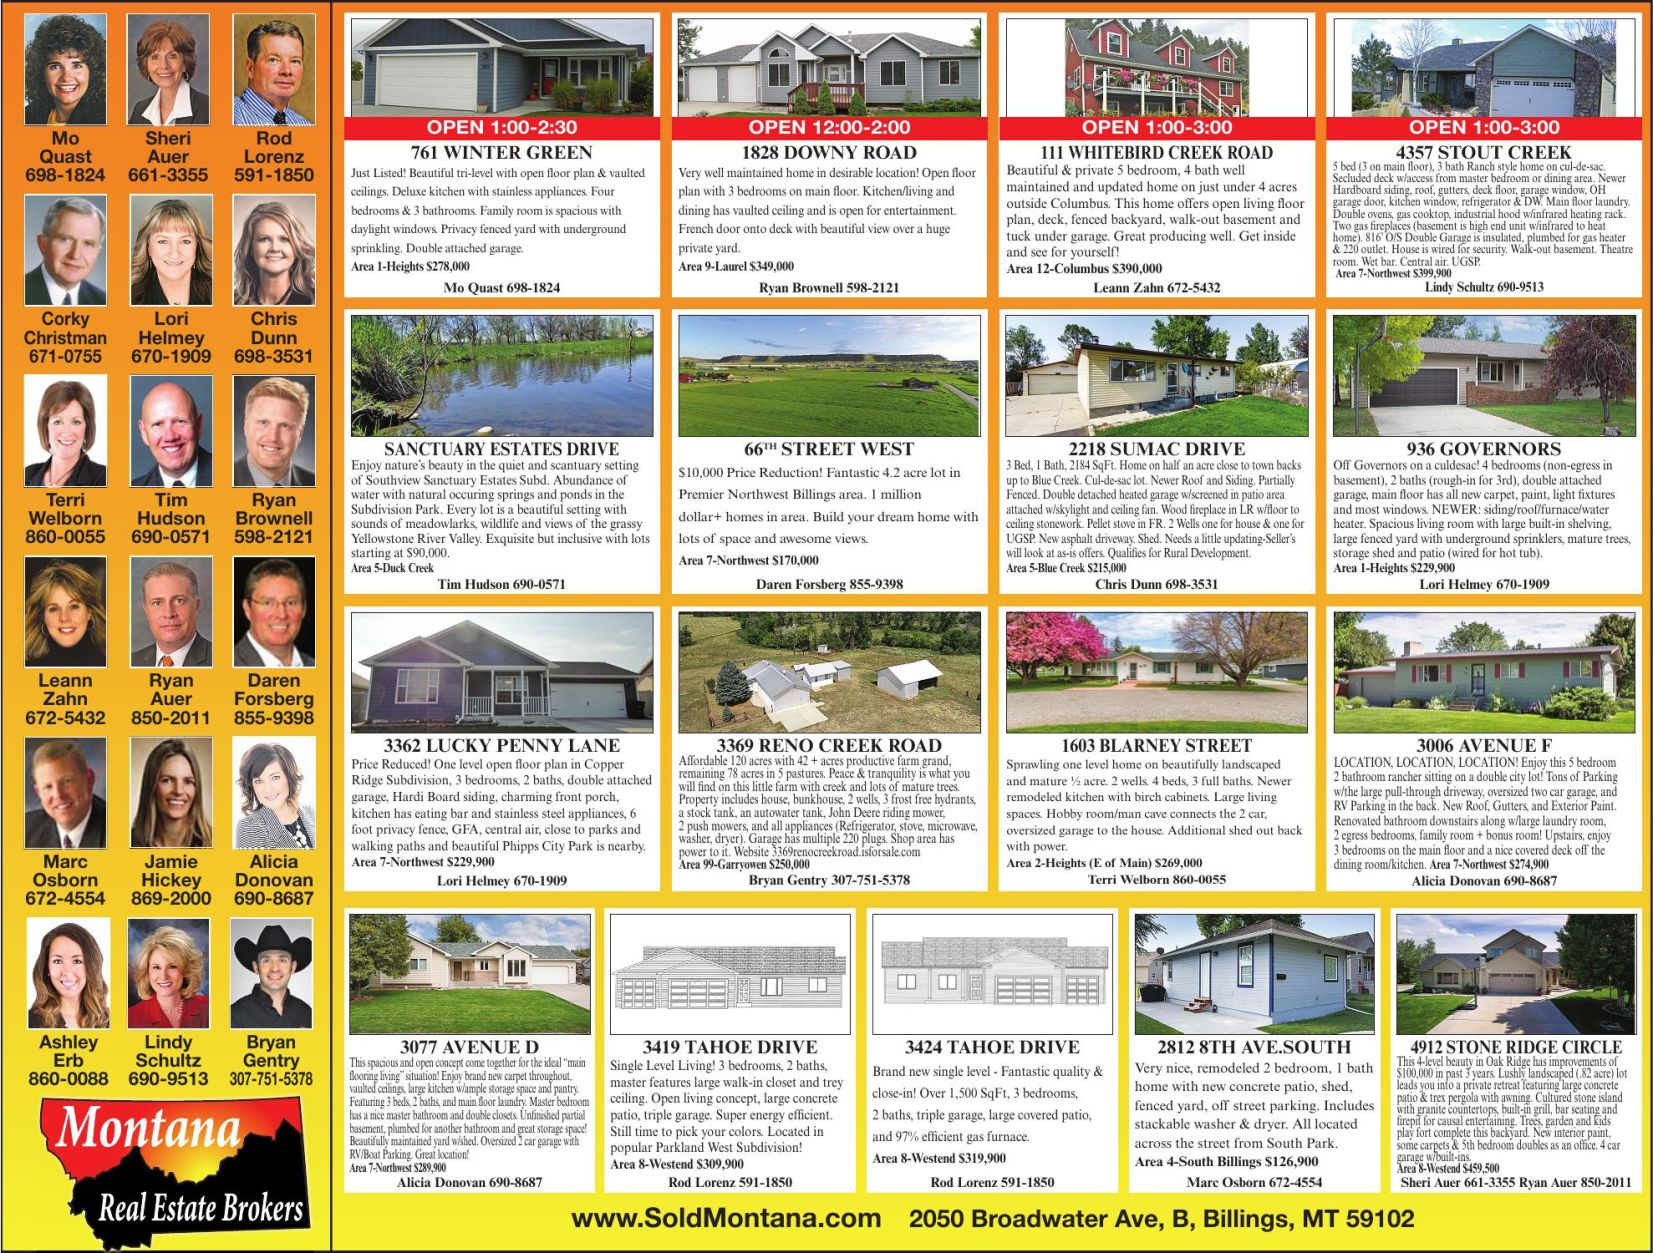 How To Build Your Own Underground Home Pdf